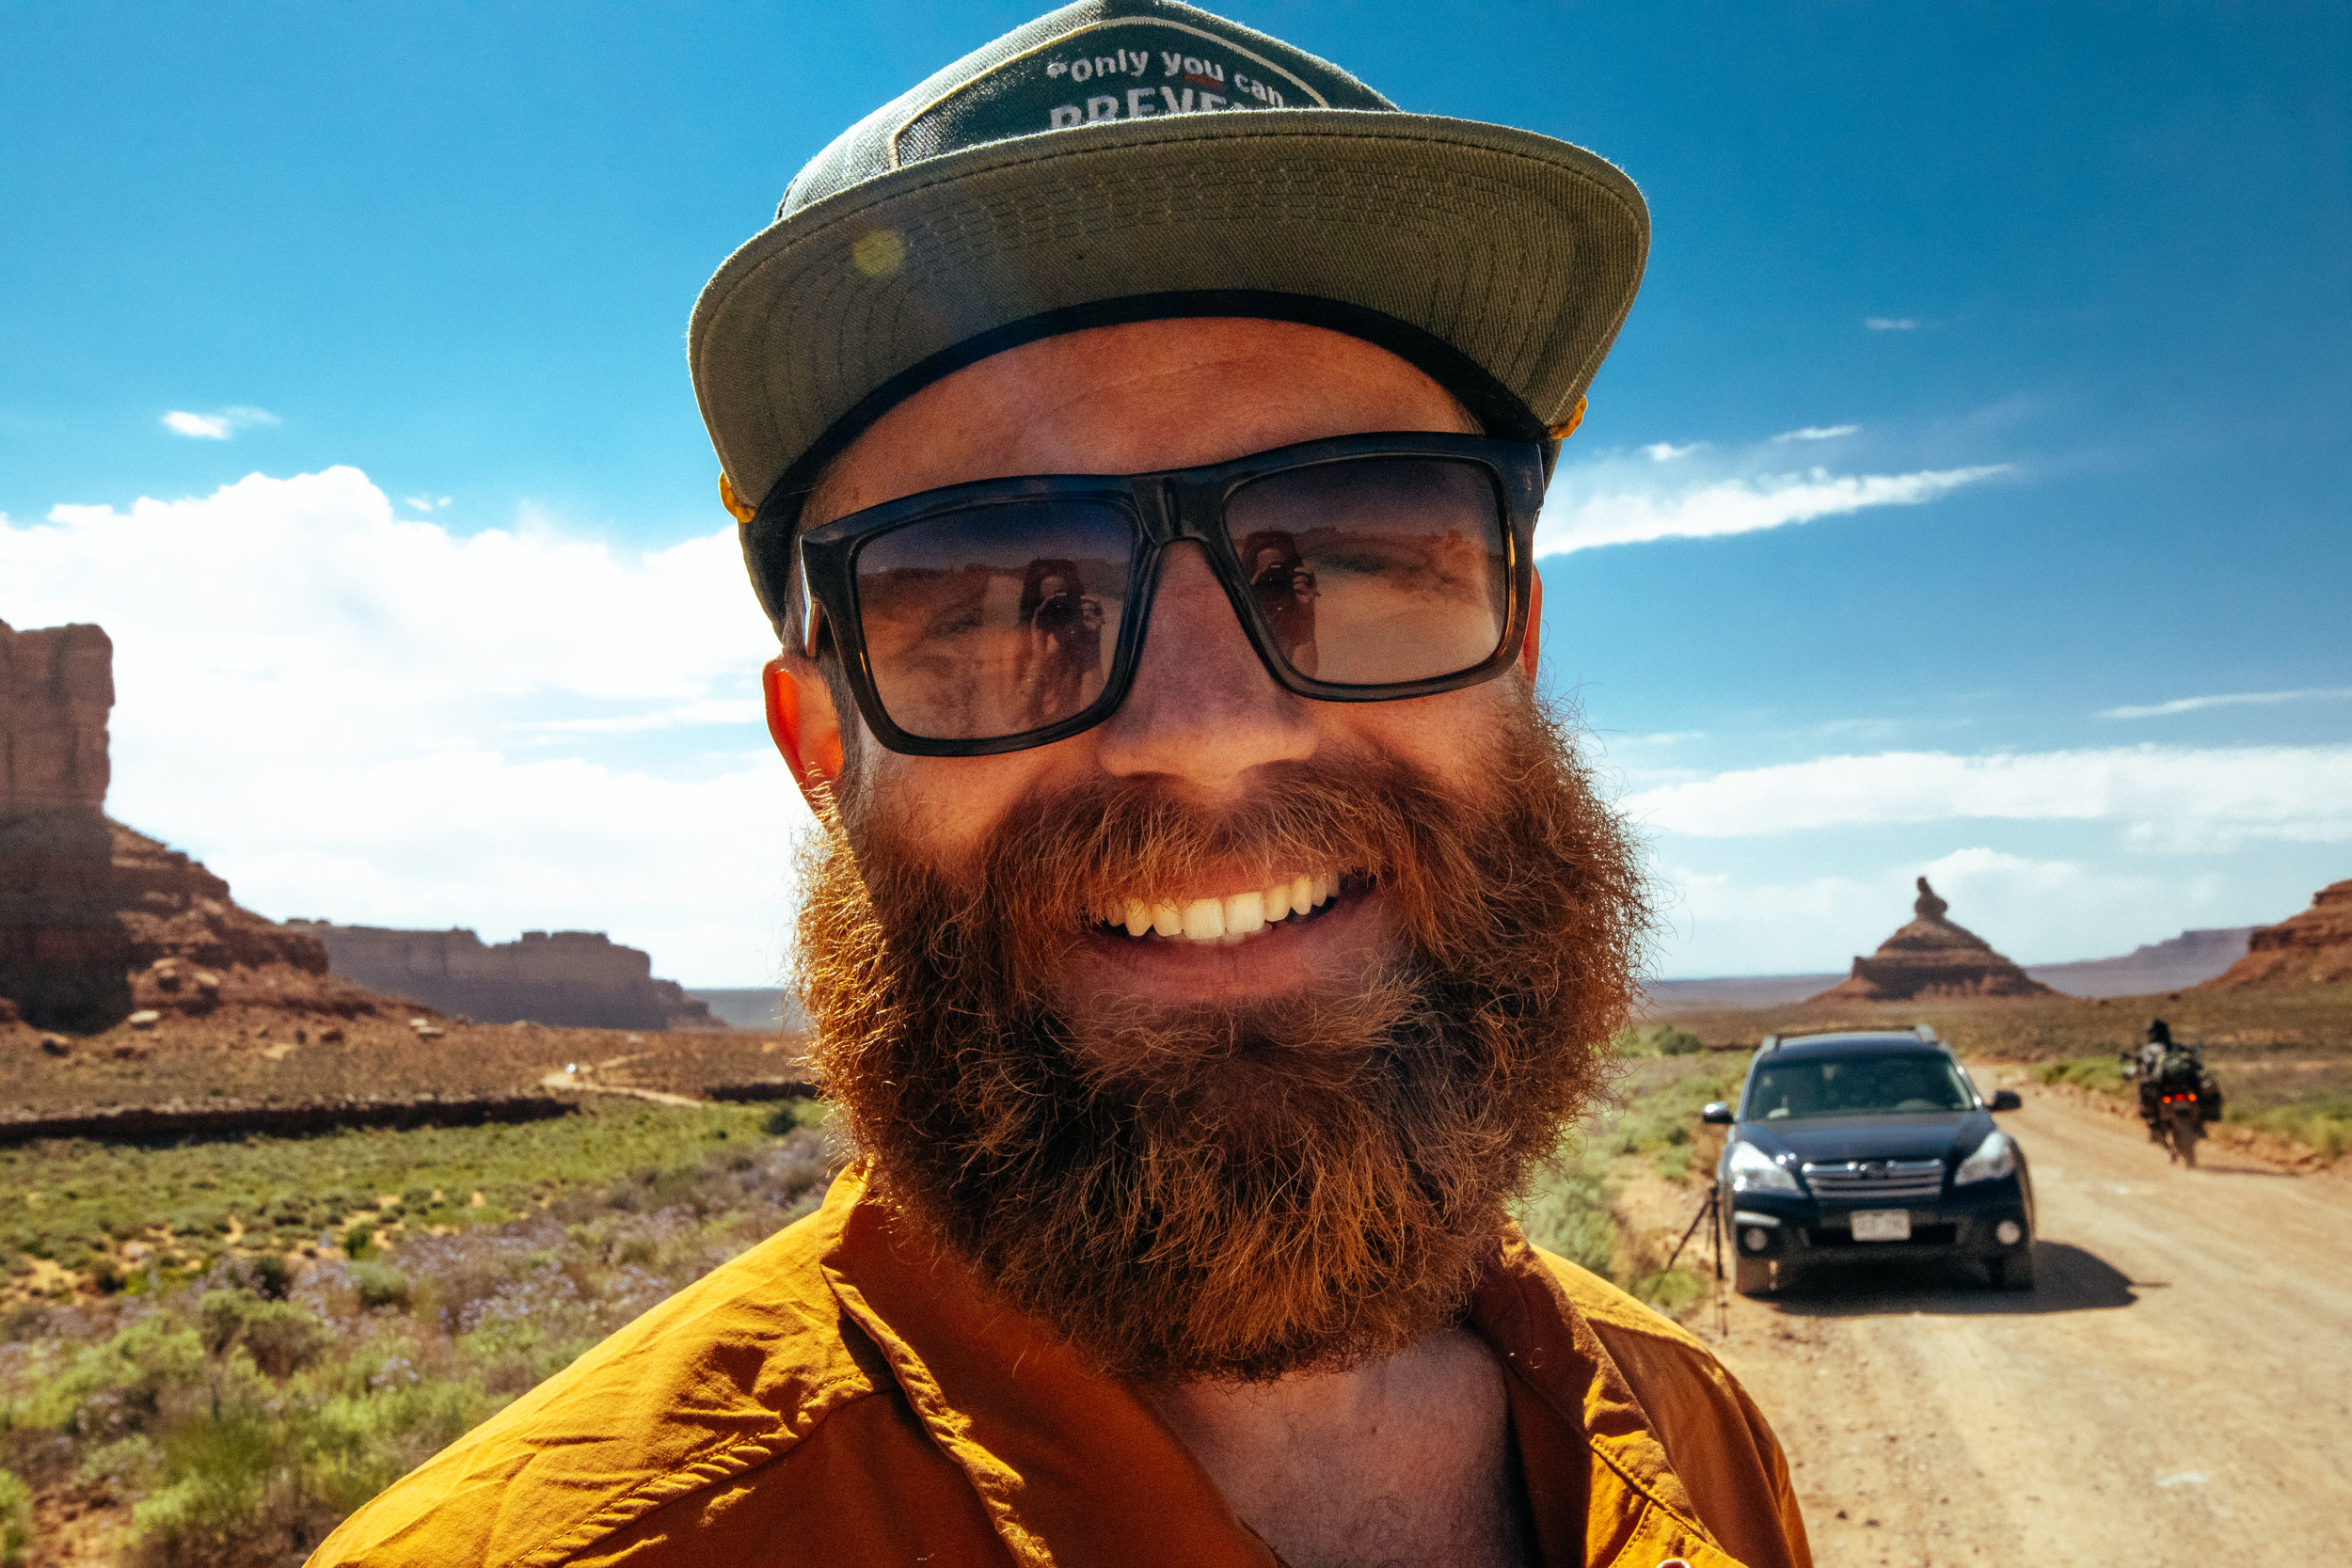 Meet Max - Max Janatsch is a Lompoc, California native whose passions include droning, photography, videography, travel, and buying candy and a Monster at every single gas station he stops at on road trips. From filming with Quadcopter's to GoPro's, anything that's worthy of being recorded, he will be there to capture the moment.